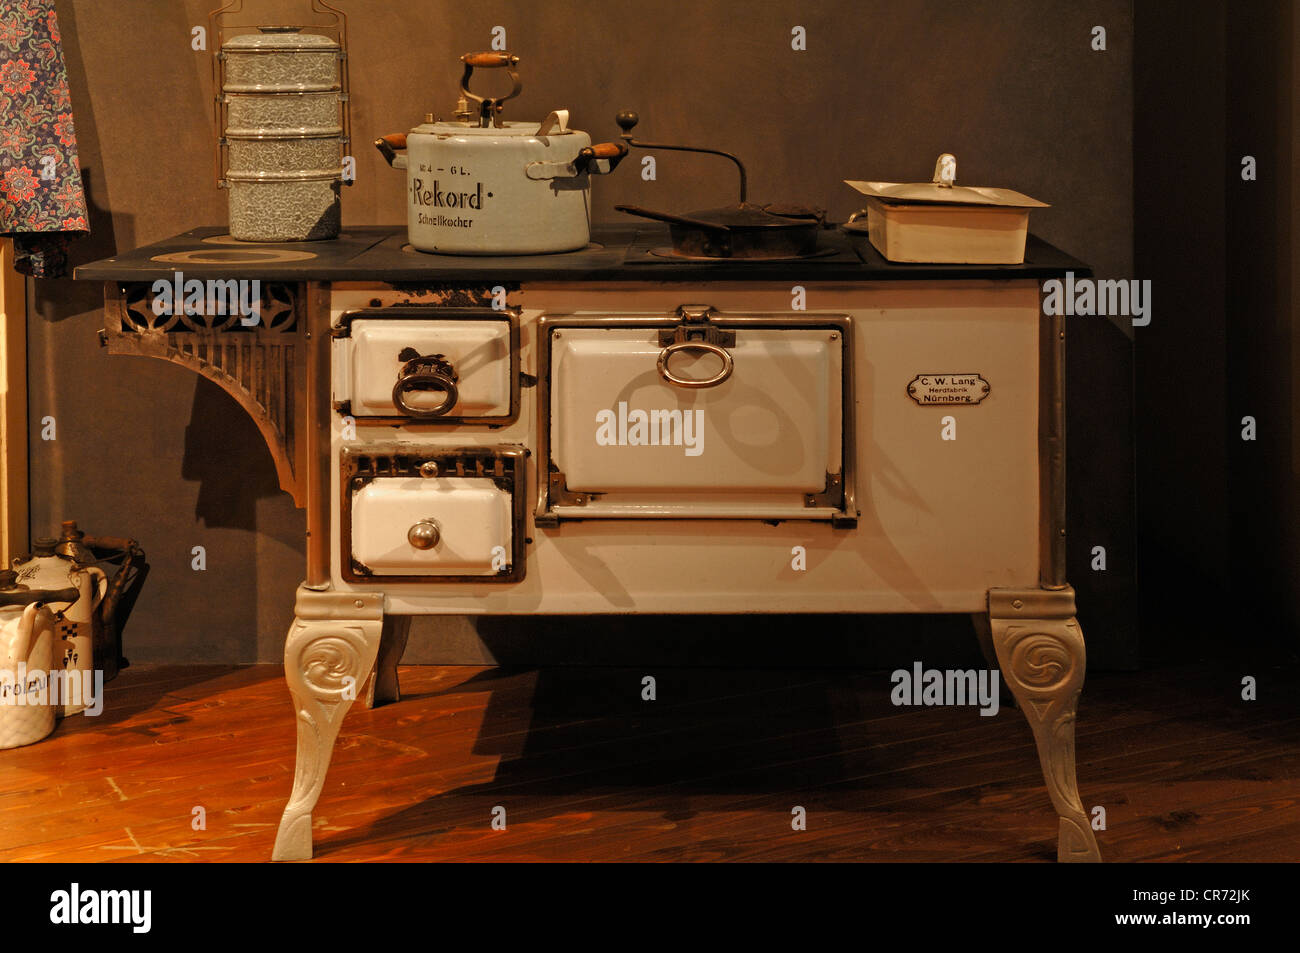 Kitchen Stove From 1900, Museum For Industrial Culture, Aeussere Sulzbacher  Strasse 60 62